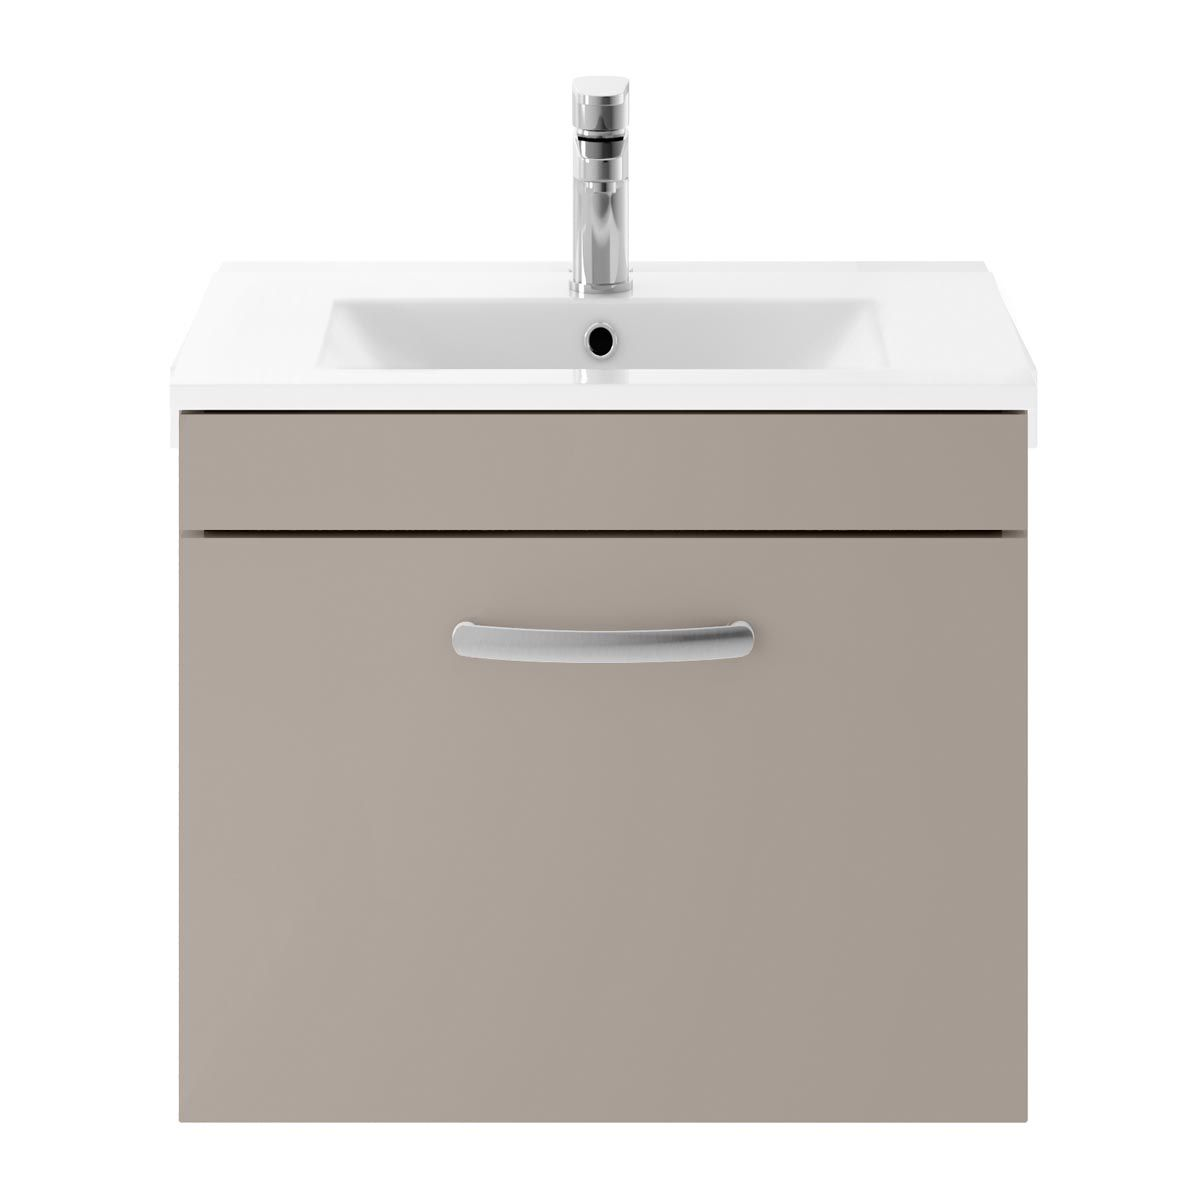 Nuie Athena Stone Grey 1 Drawer Wall Hung Vanity Unit with 18mm Profile Basin 600mm